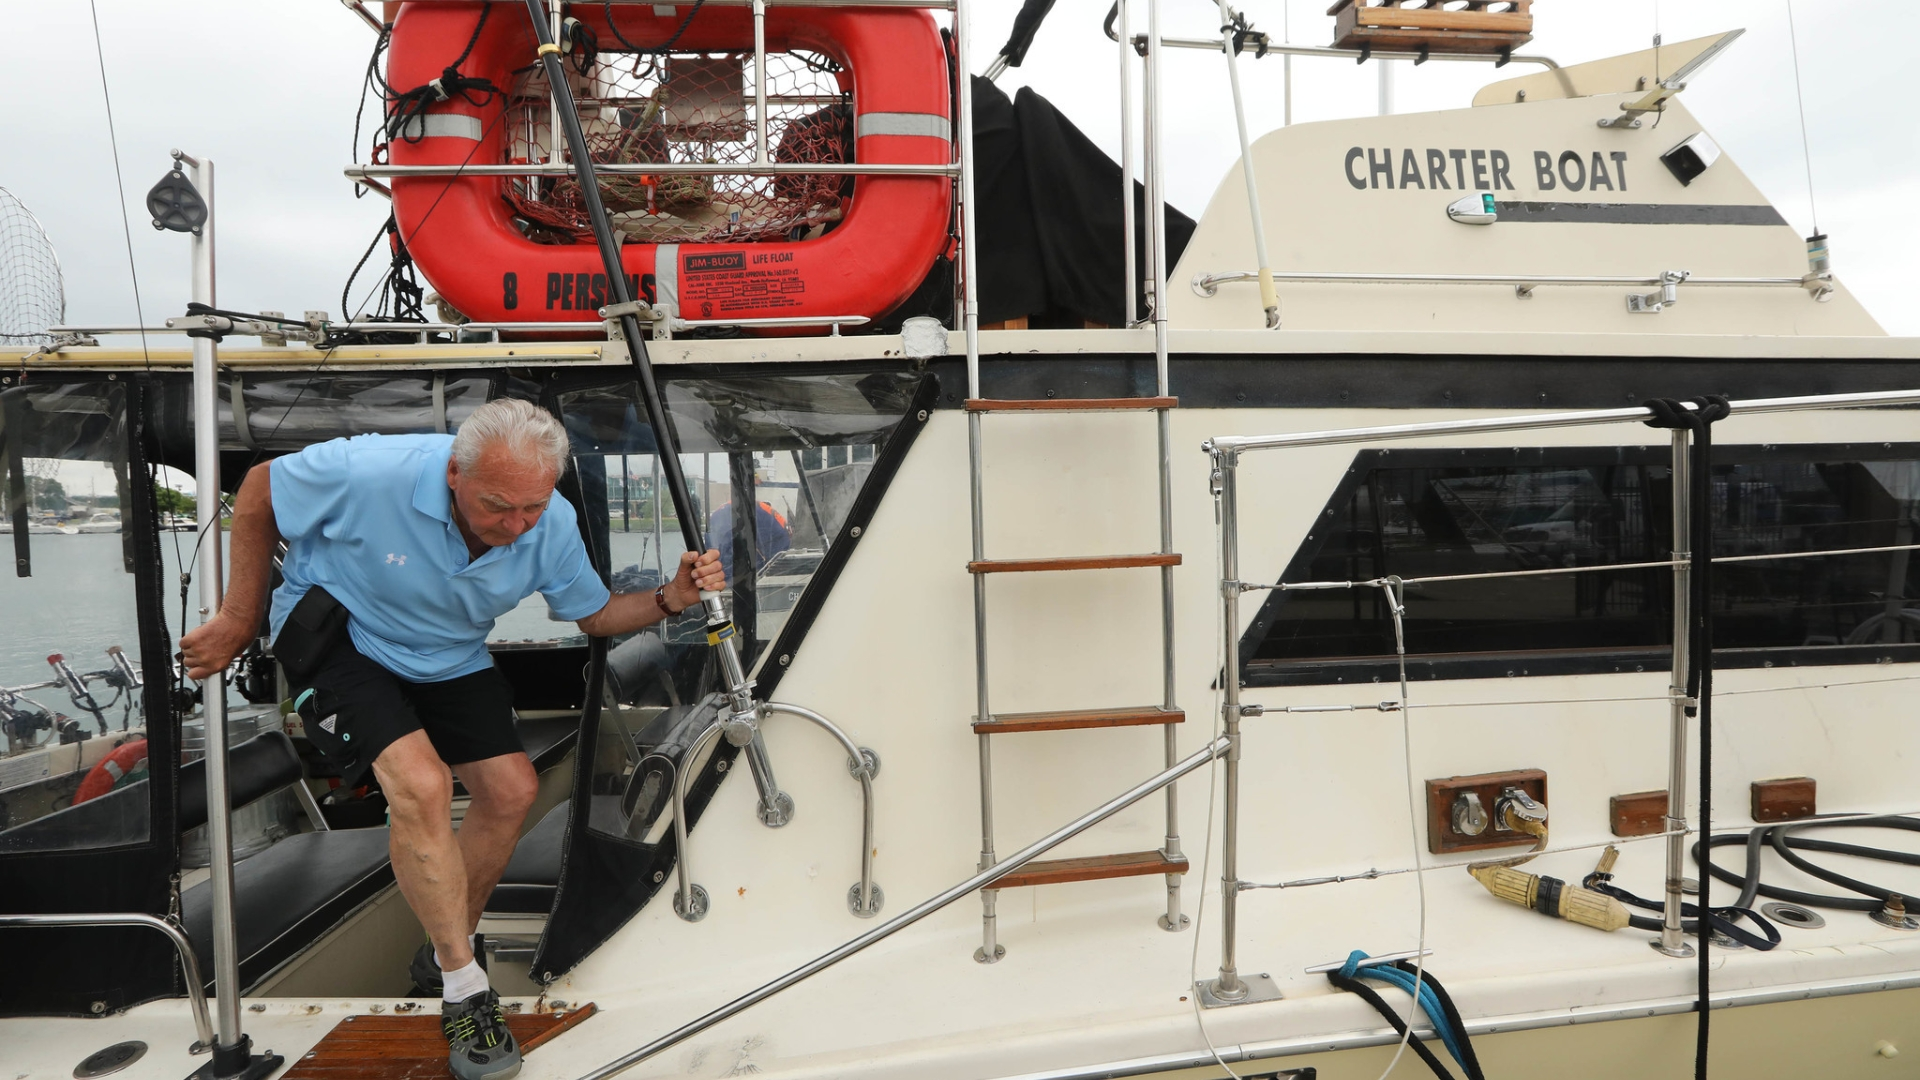 Coast Guard warns of illegal charter boats in Chicago: 'They're